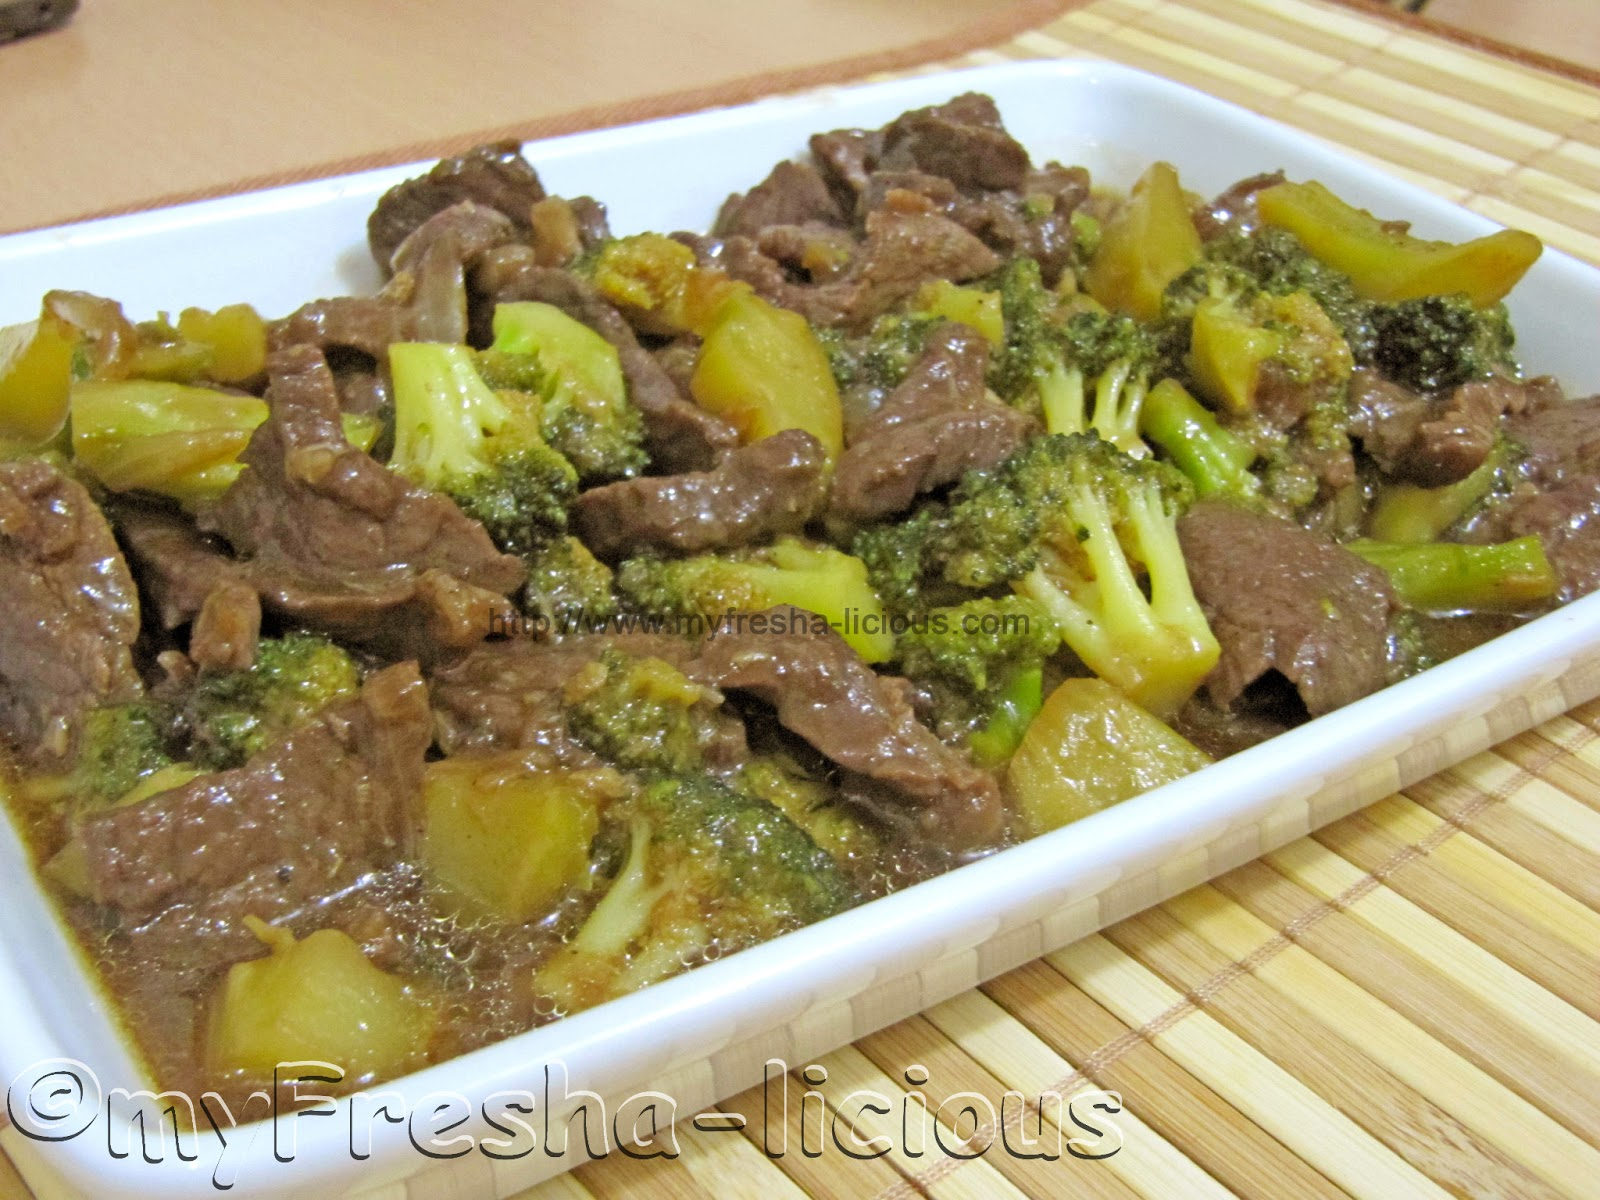 My Fresha-licious: Beef and Broccoli in Oyster Sauce